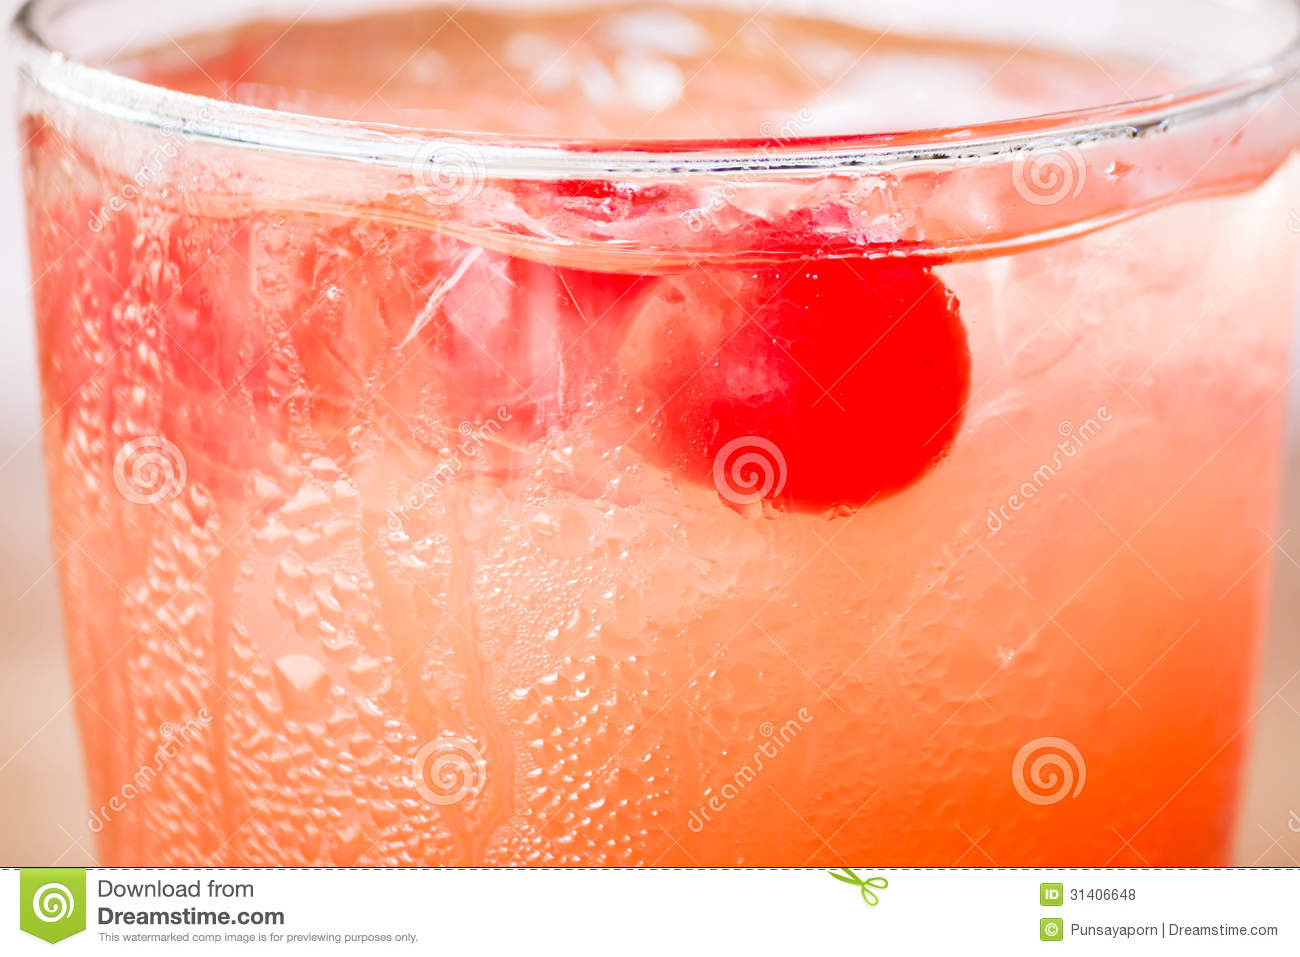 Red Cherry On Iced Mix Fruits Juice Soda Mr No Pr 0 184